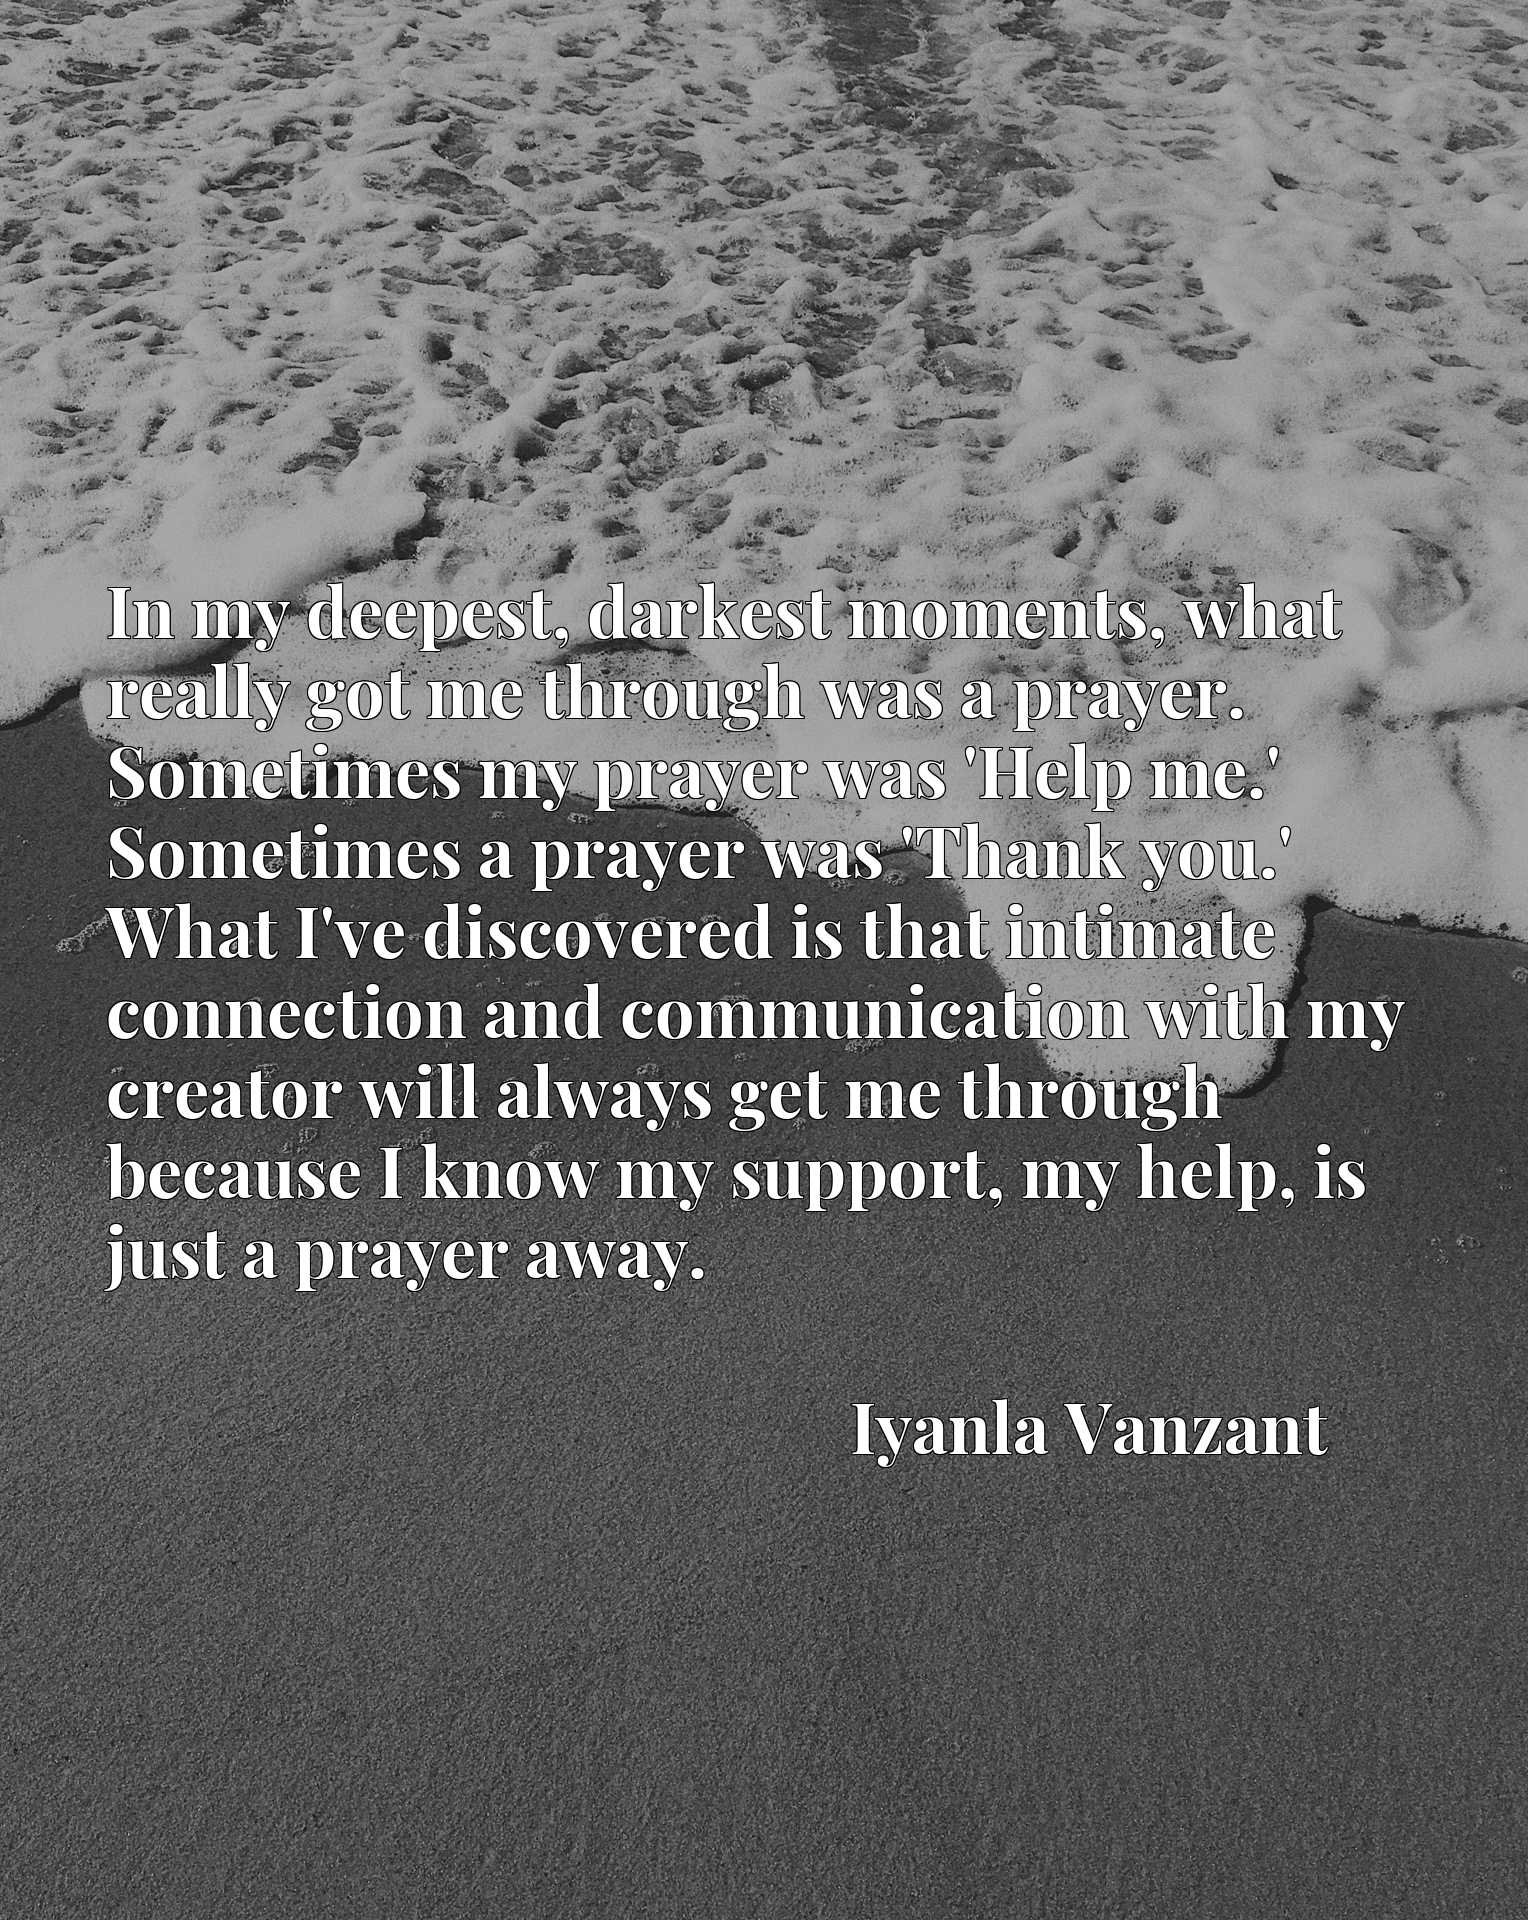 In my deepest, darkest moments, what really got me through was a prayer. Sometimes my prayer was 'Help me.' Sometimes a prayer was 'Thank you.' What I've discovered is that intimate connection and communication with my creator will always get me through because I know my support, my help, is just a prayer away.